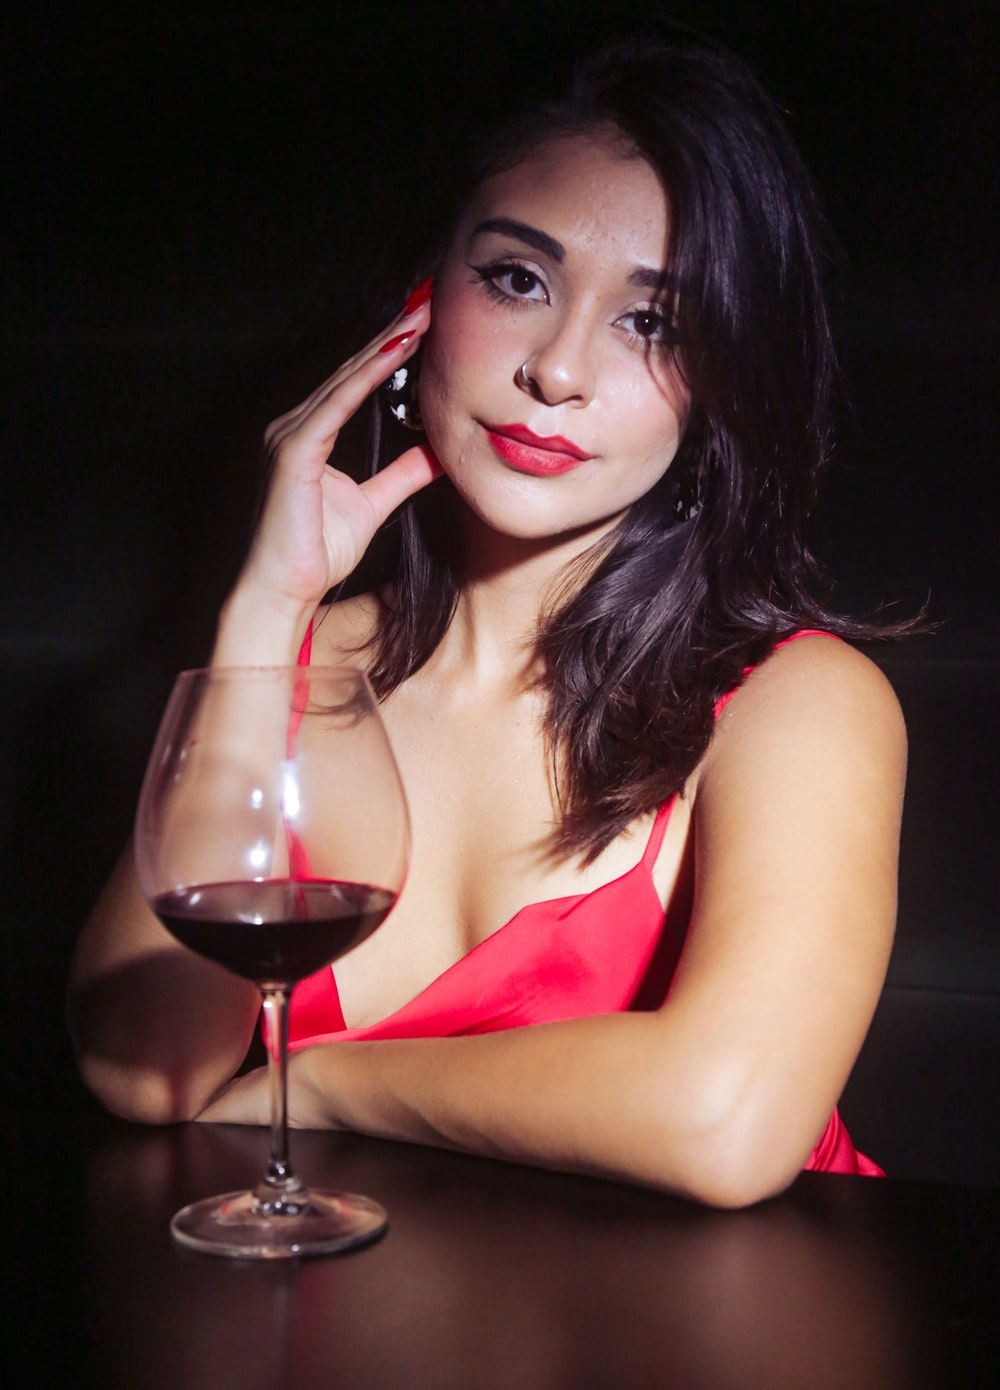 woman in red tank top holding wine glass